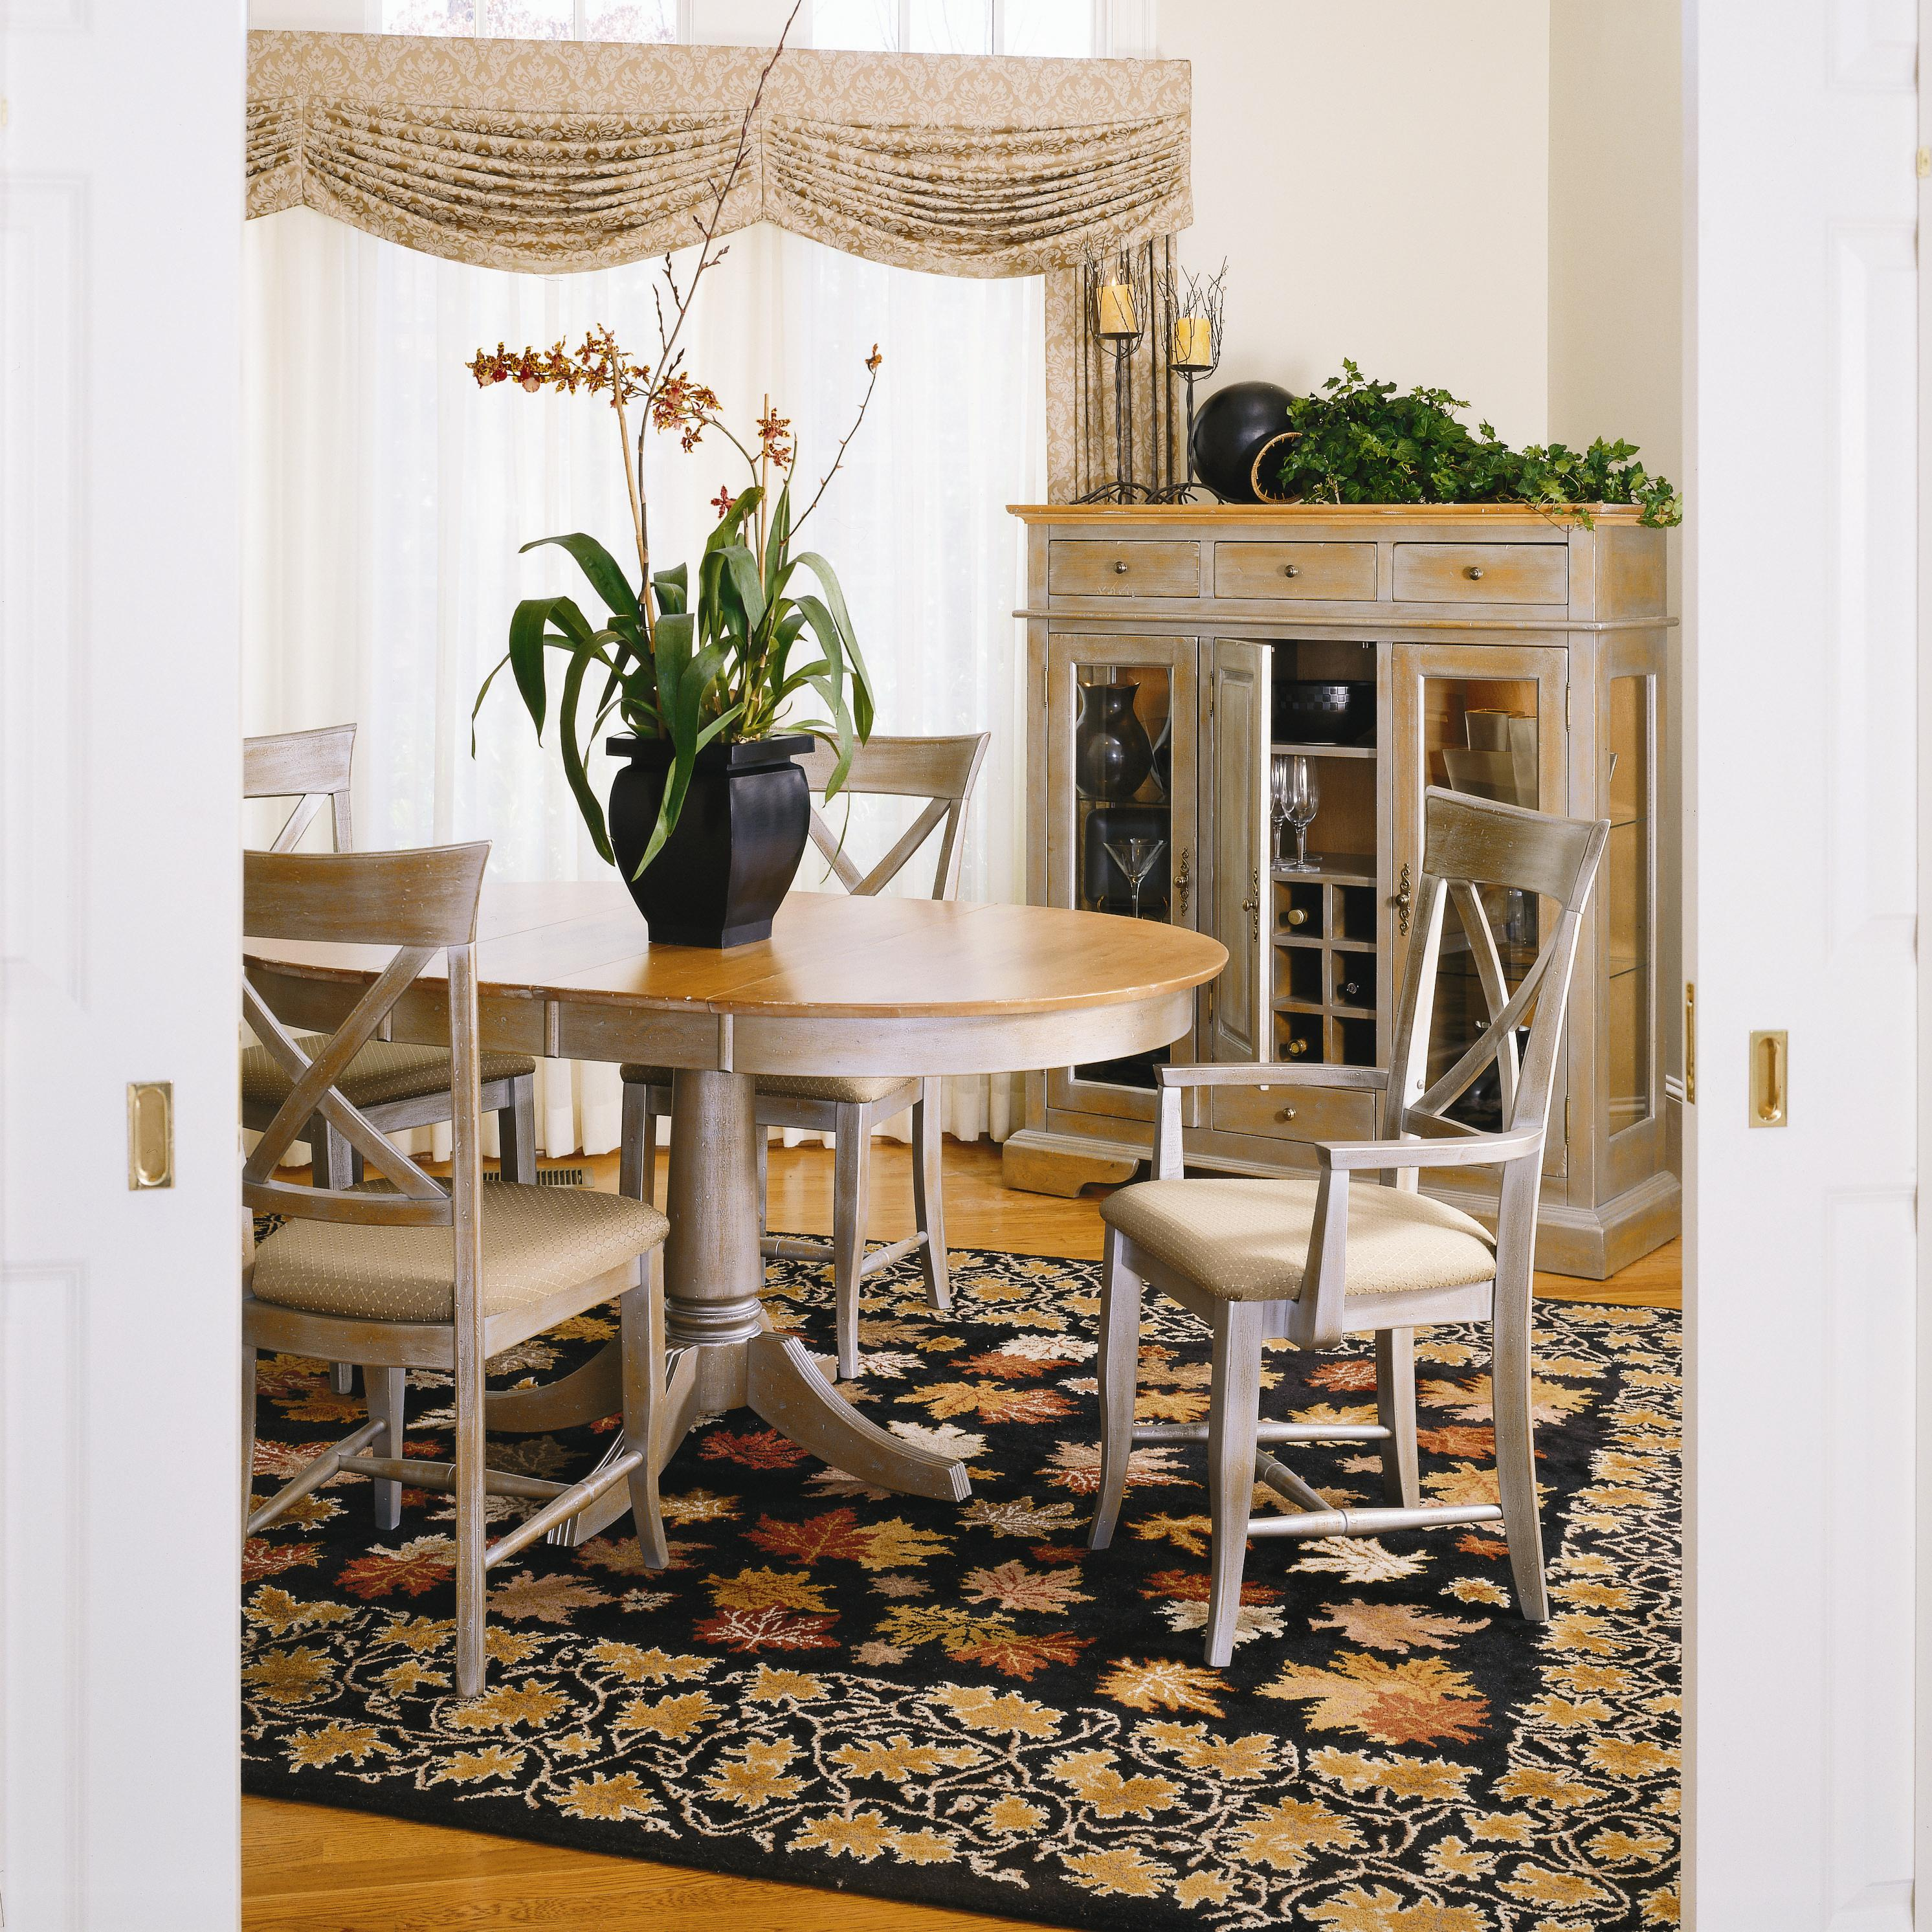 Thomasville color café custom dining customizable round dining table louis mohana furniture dining room table